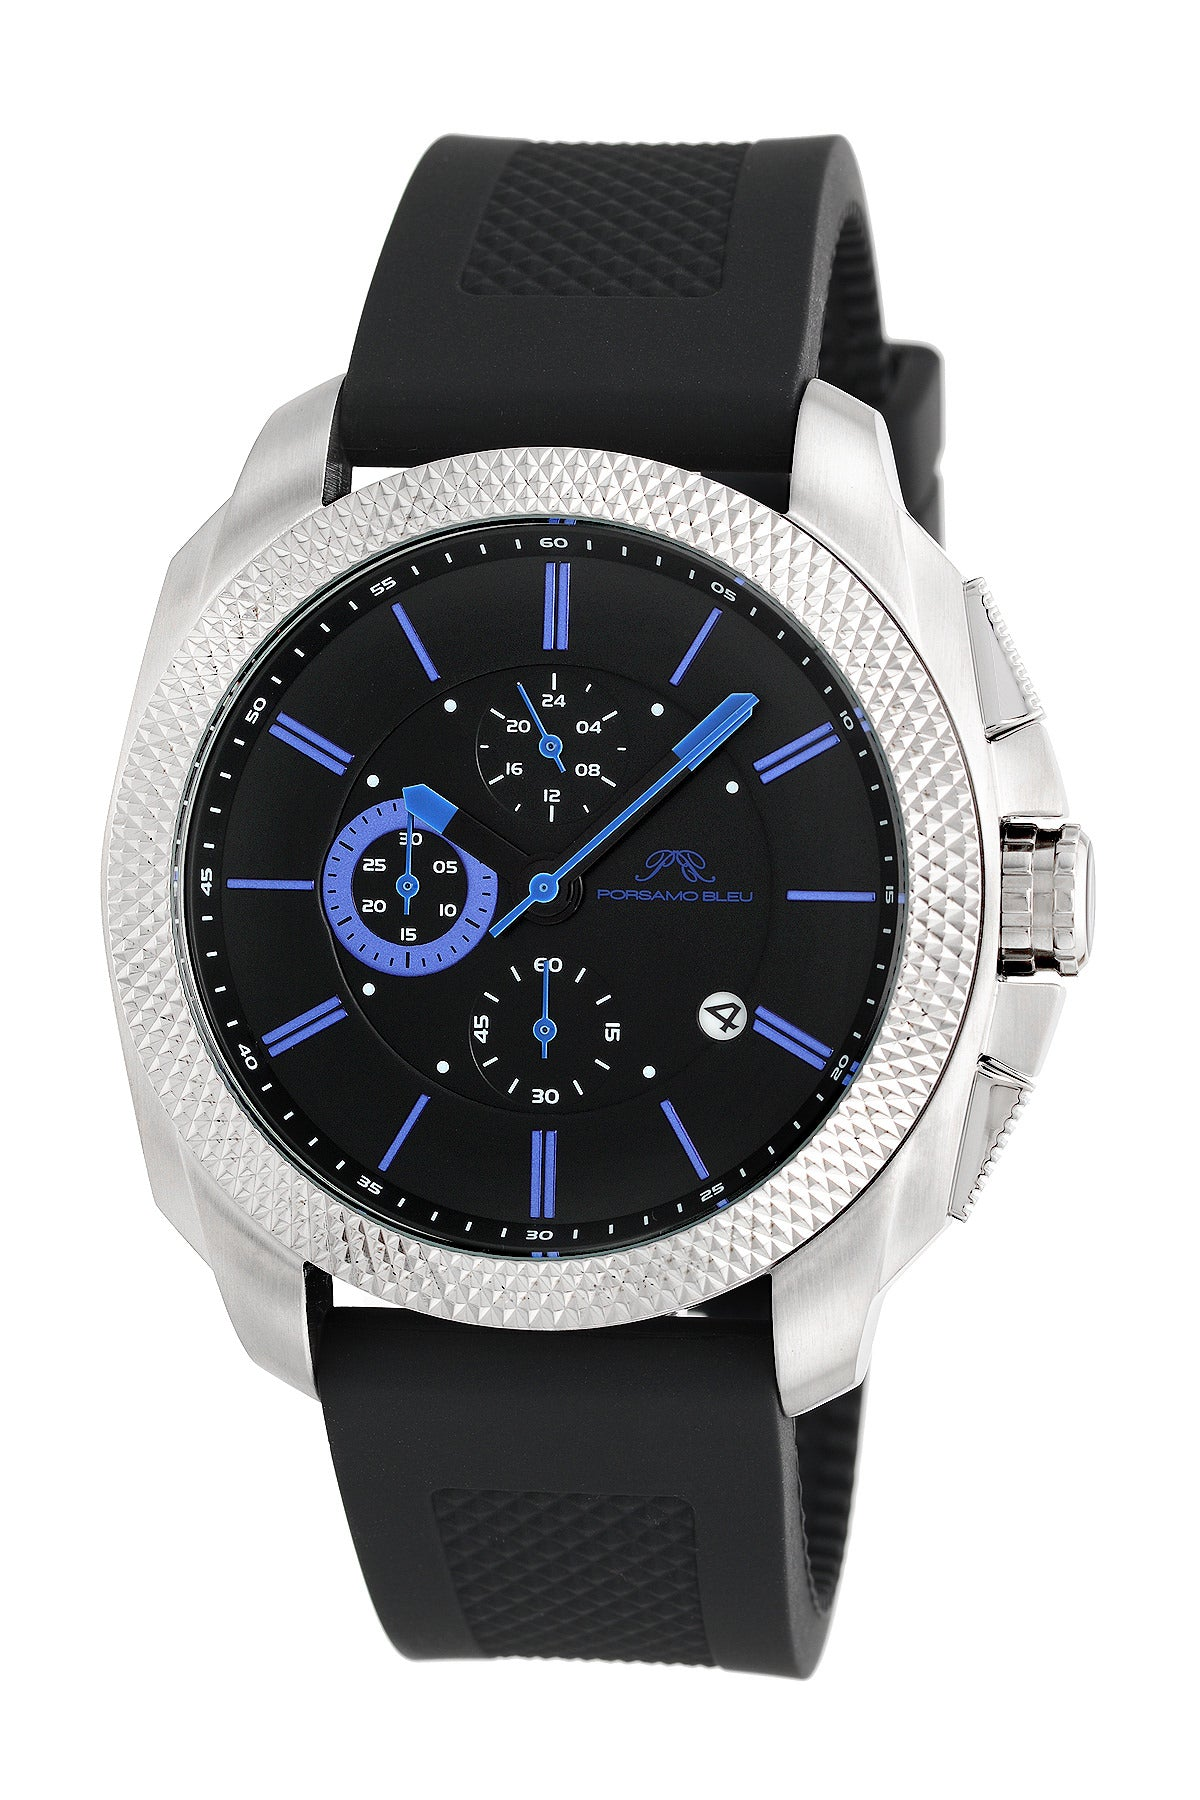 Porsamo Bleu Niccolo luxury chronograph men's watch, silicone strap, silver, black, blue 332BNIR